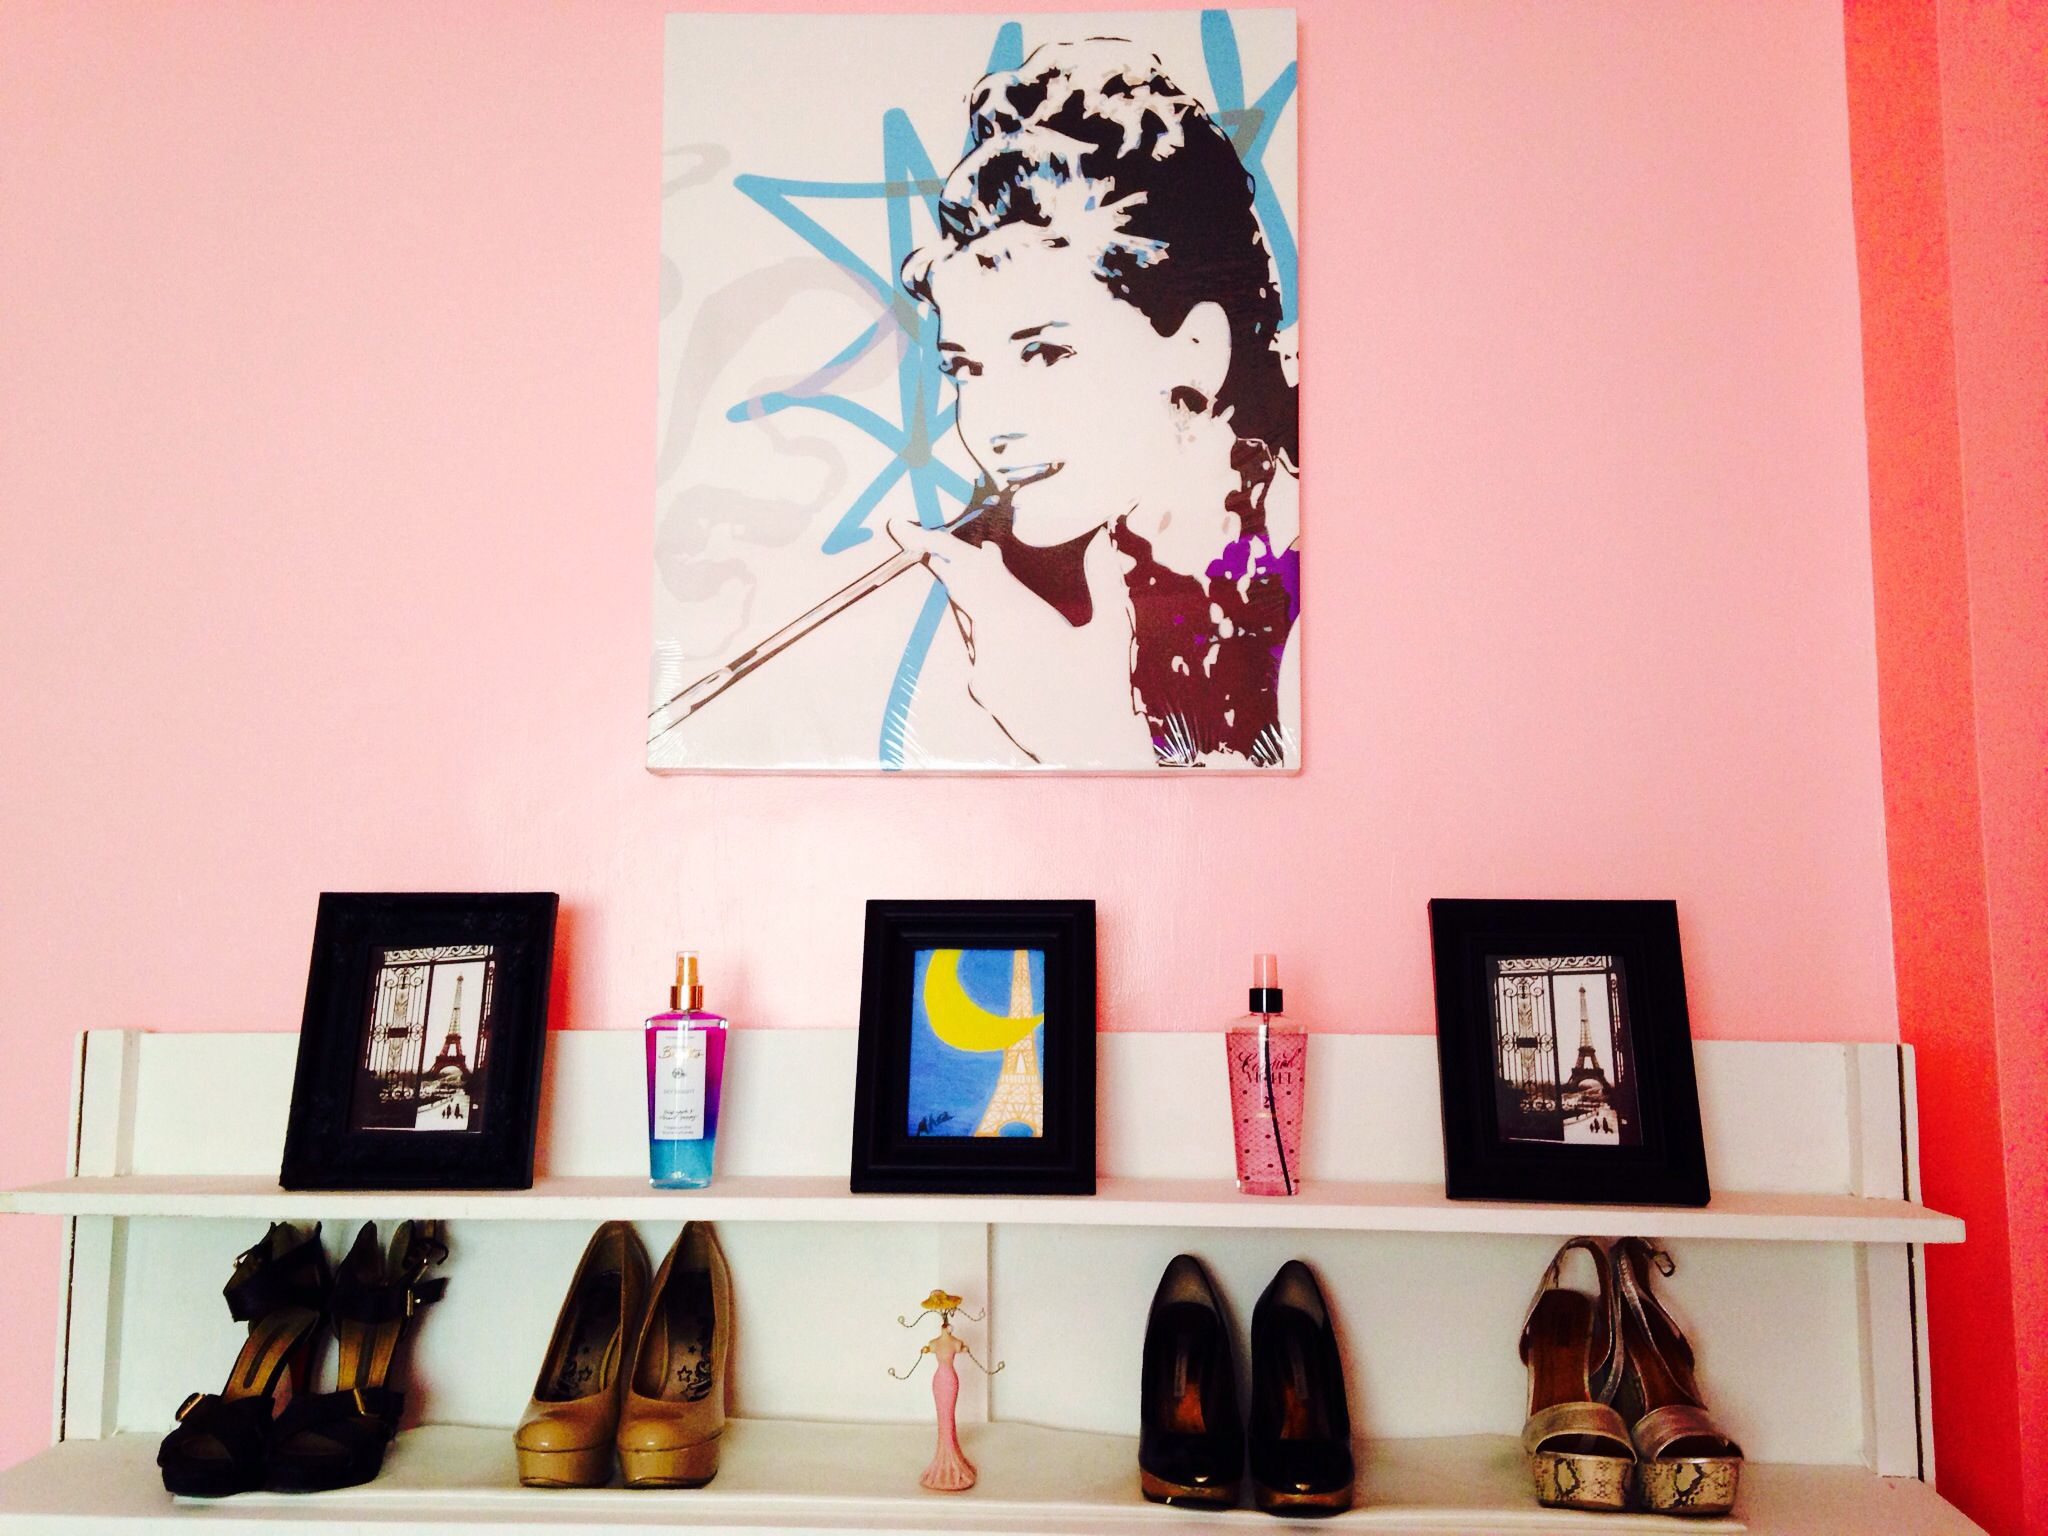 added the audrey hepburn to complete this paris wall